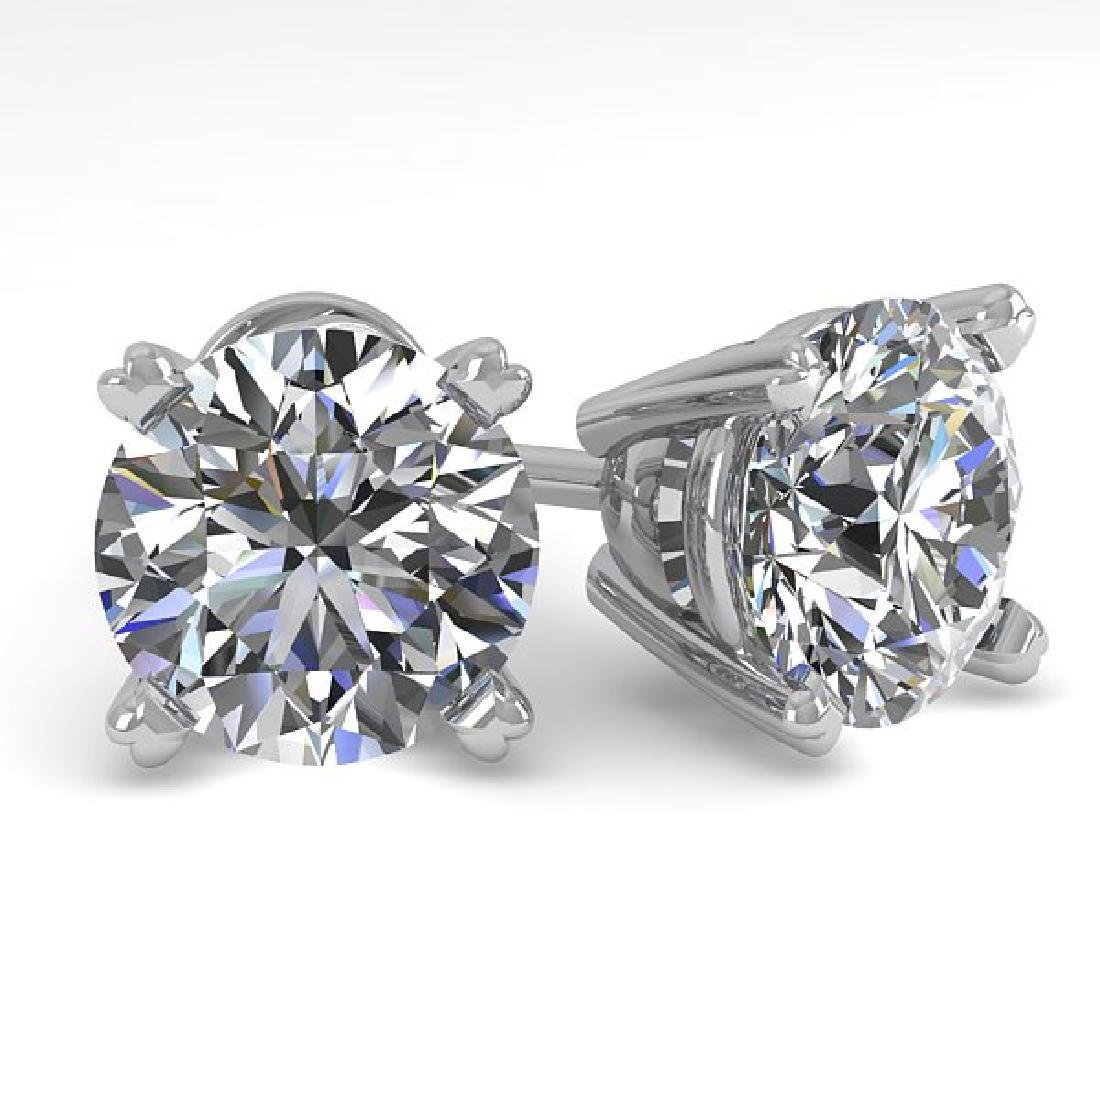 2.53 CTW Certified VS/SI Diamond Stud Earrings 18K